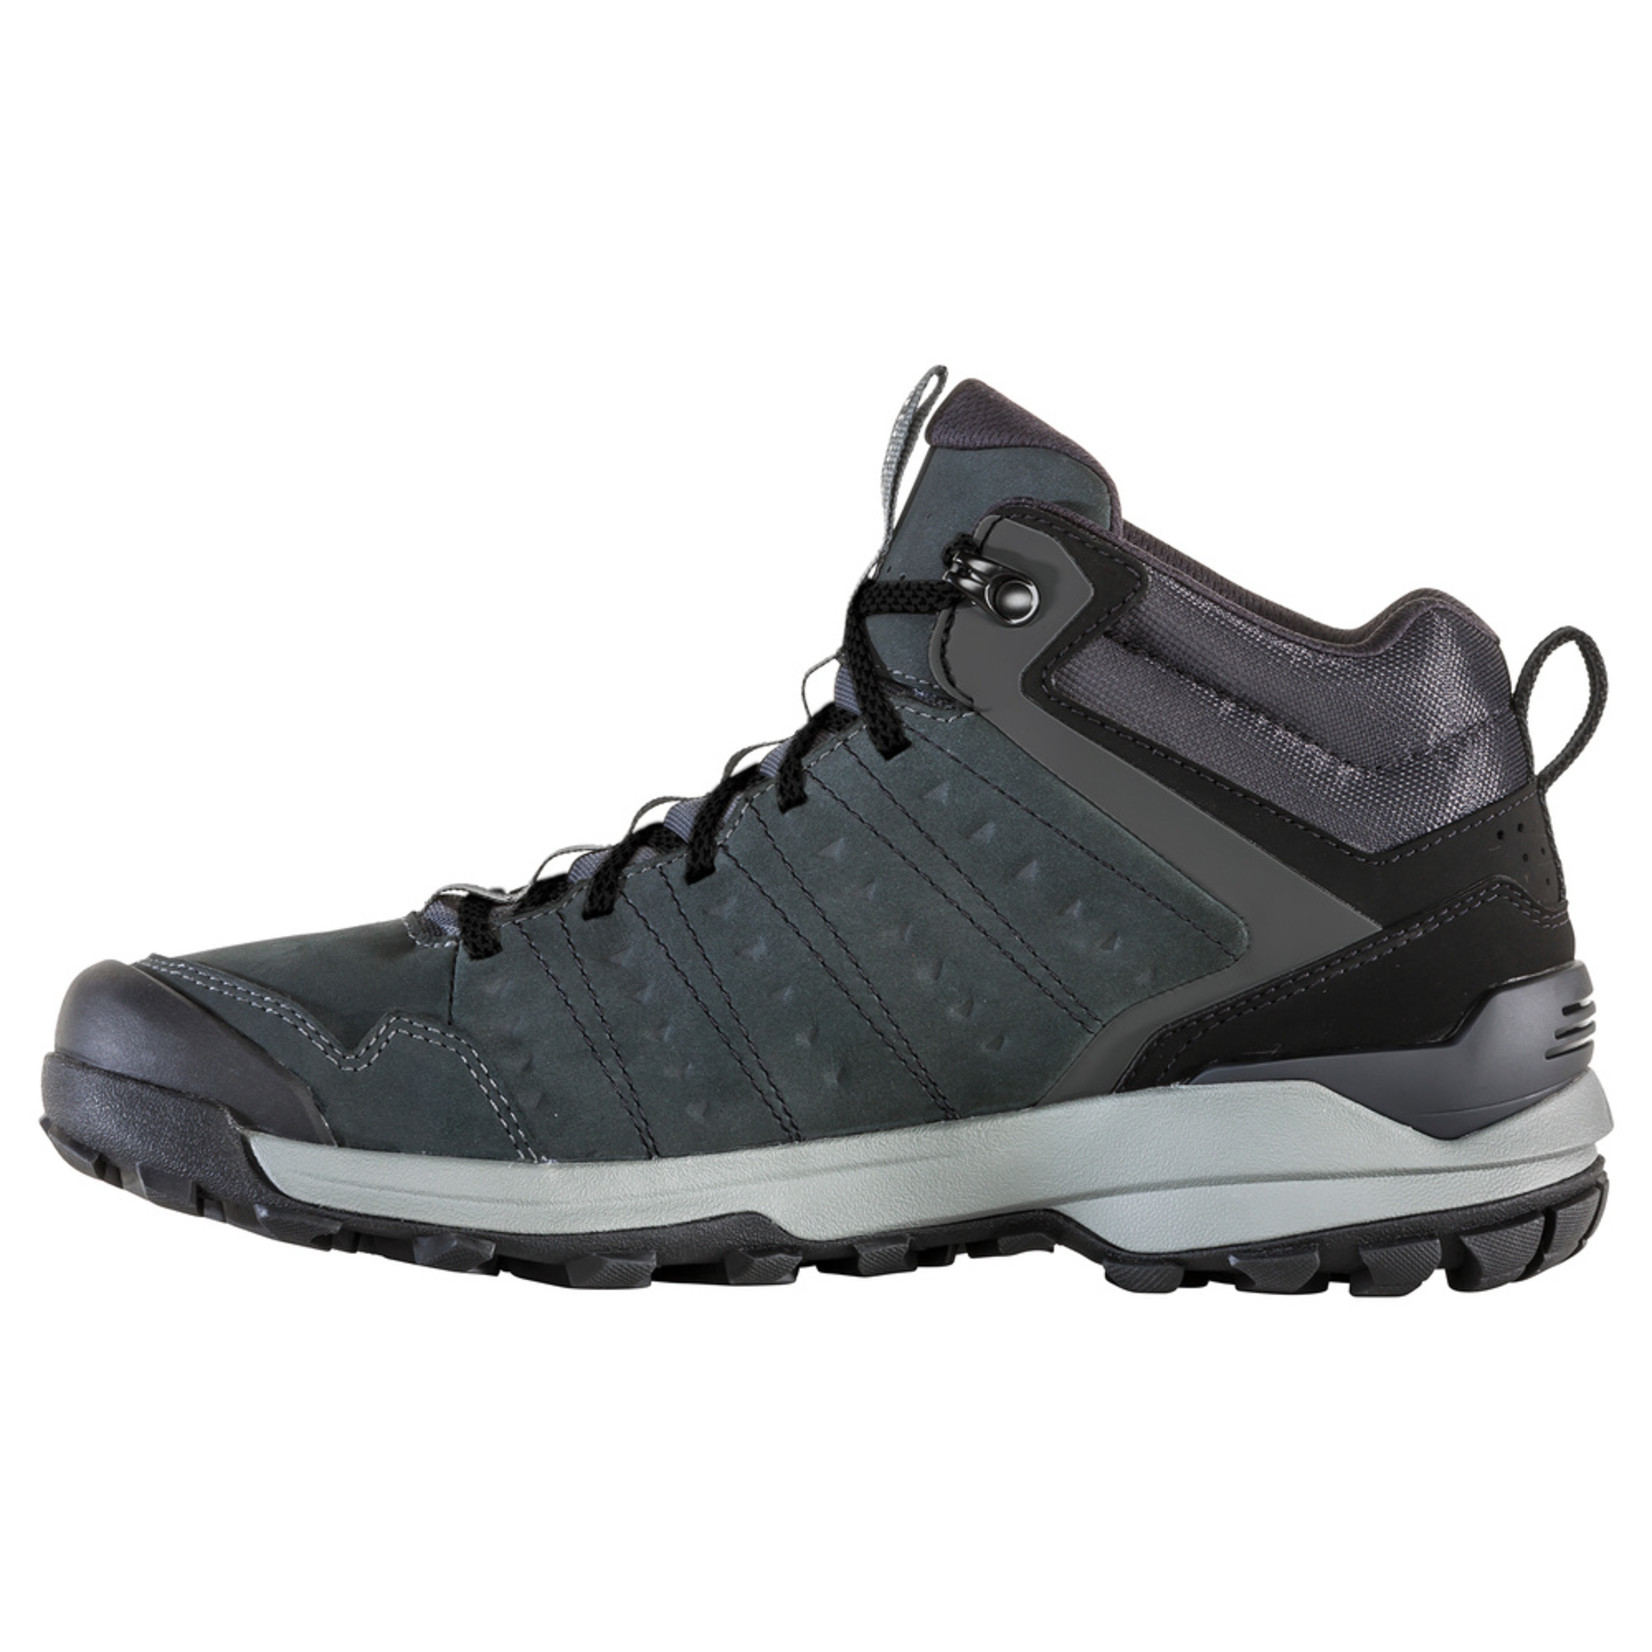 Oboz Men's Oboz Sypes Mid Leather Waterproof 77101